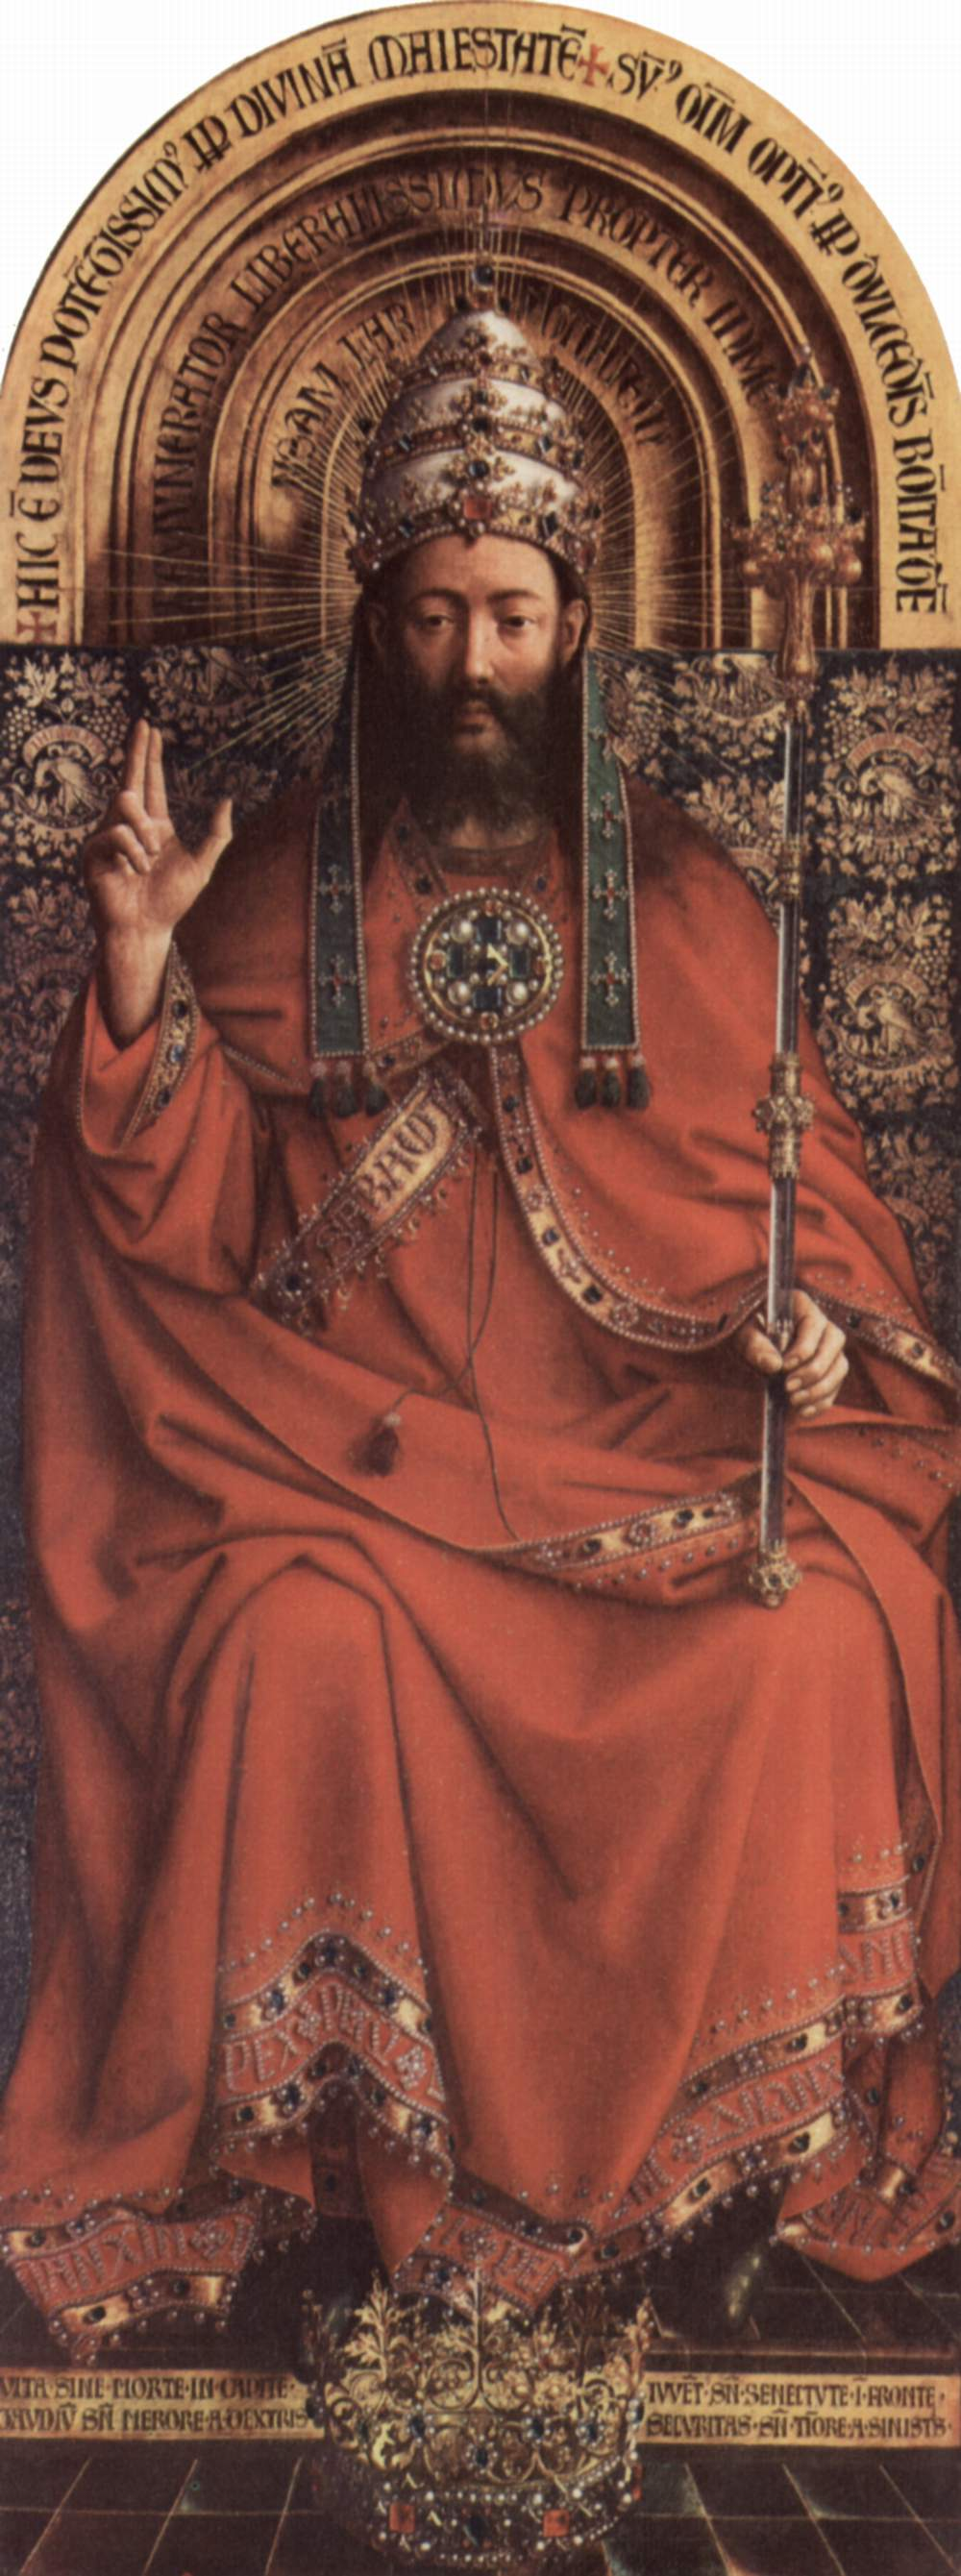 Christ the King Jan Van Eyck